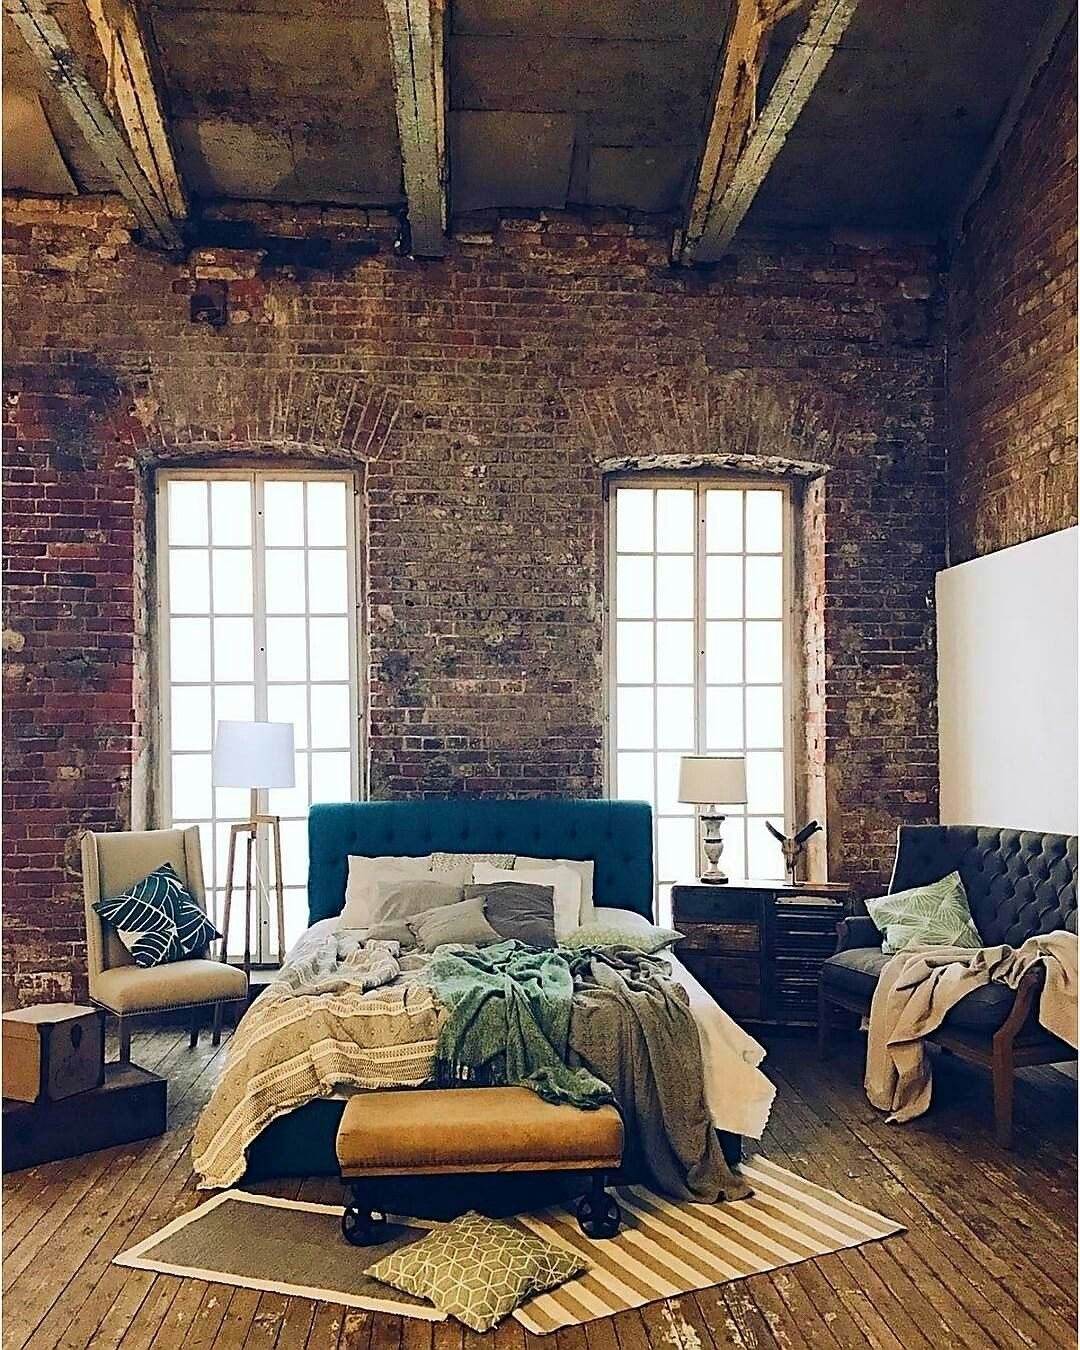 houseofvdm❤ #love | industrial chic | pinterest | lofts, bedrooms